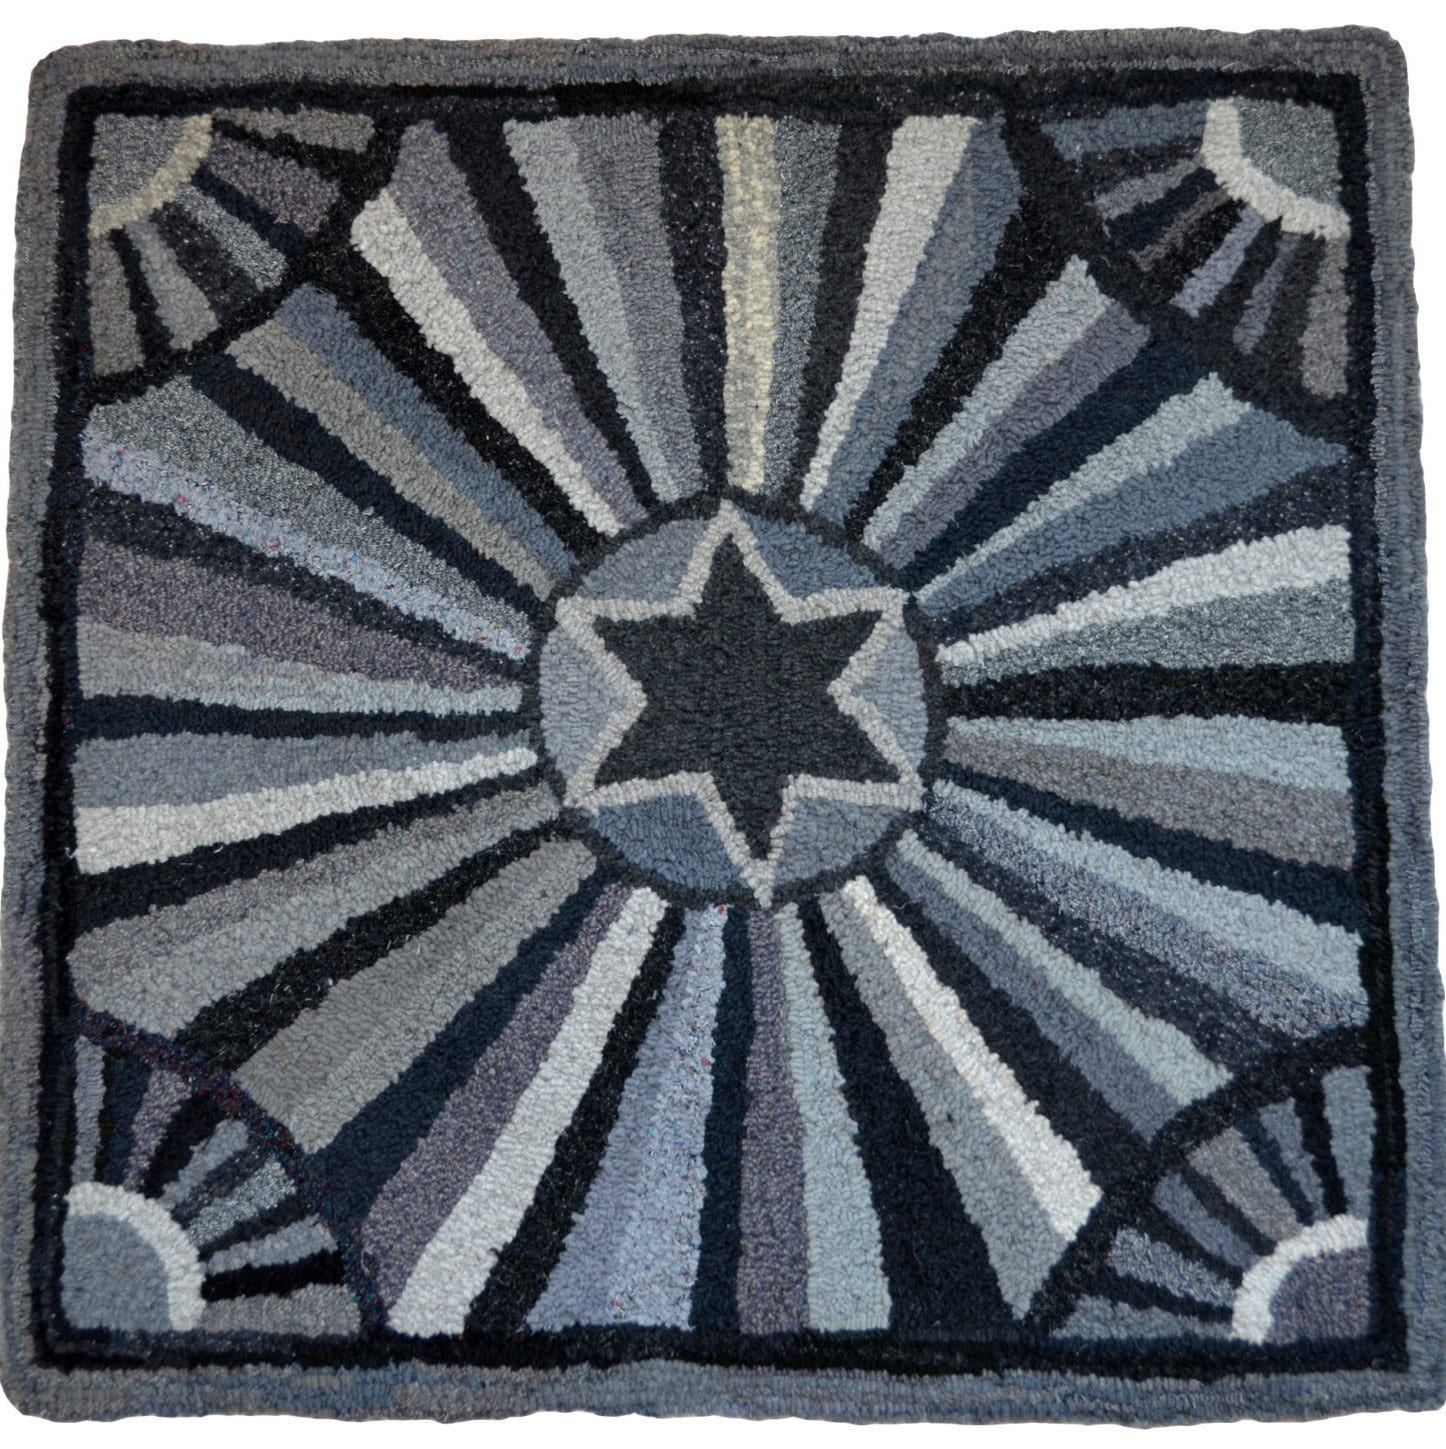 Hand hooked wool rag rug grey black crazy star with fans for Crazy carpet designs